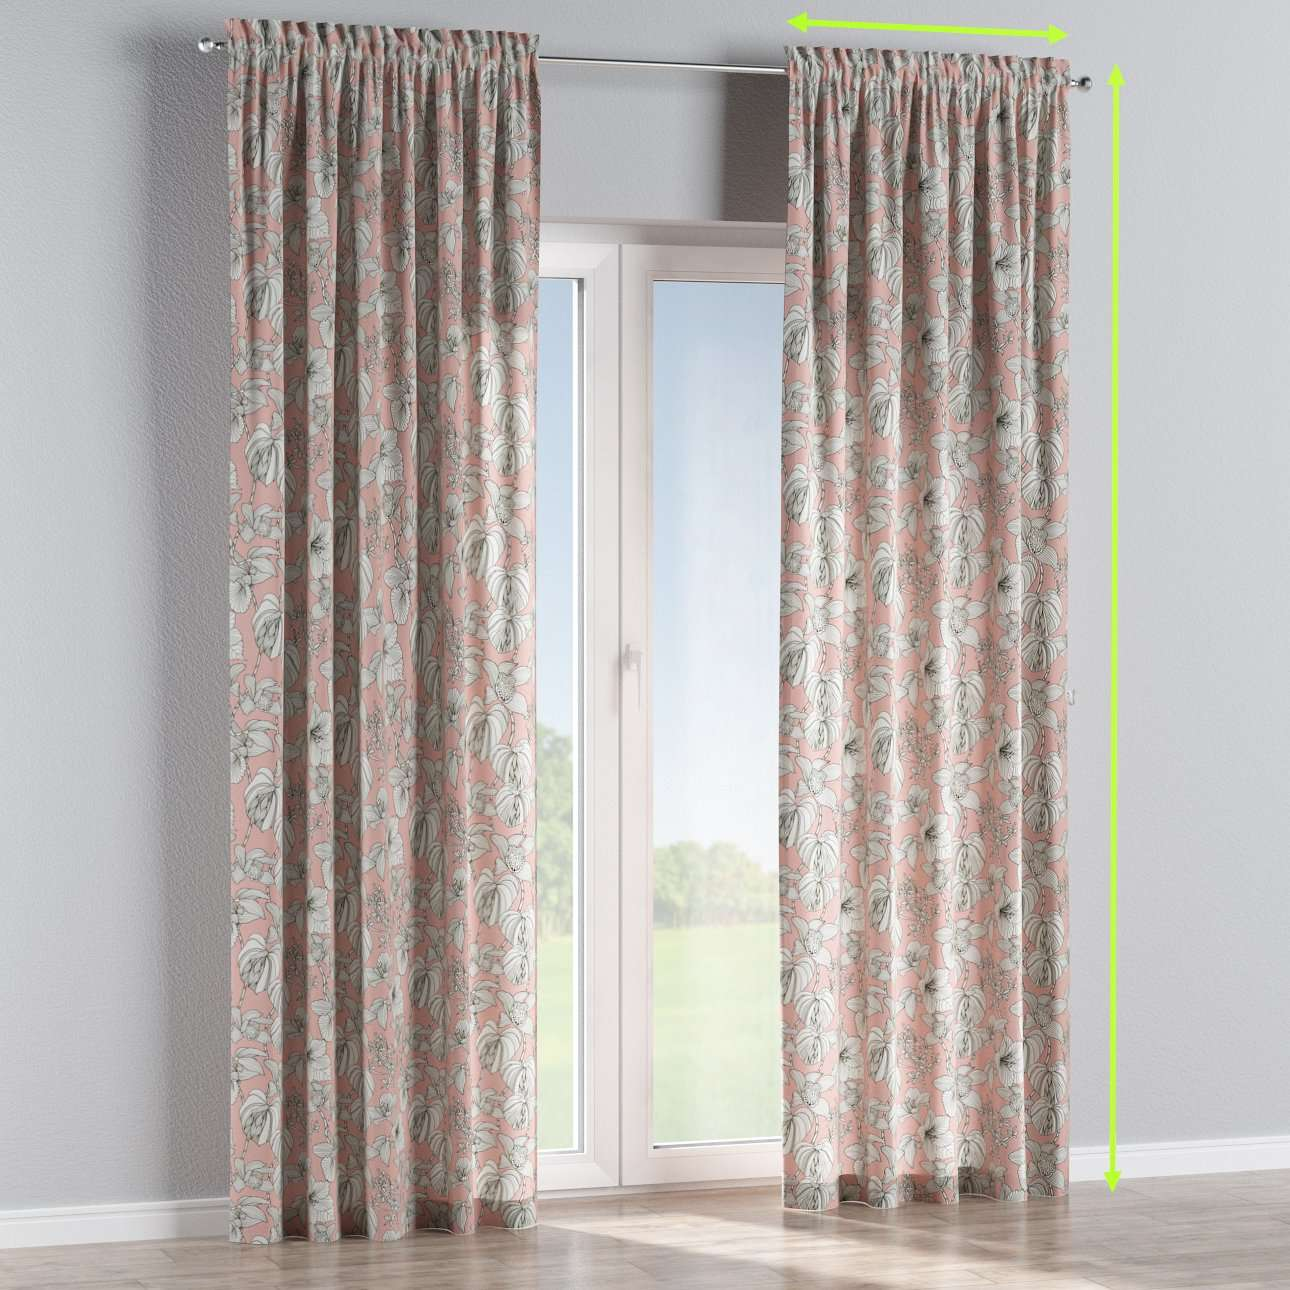 Slot and frill curtains in collection Brooklyn, fabric: 137-74